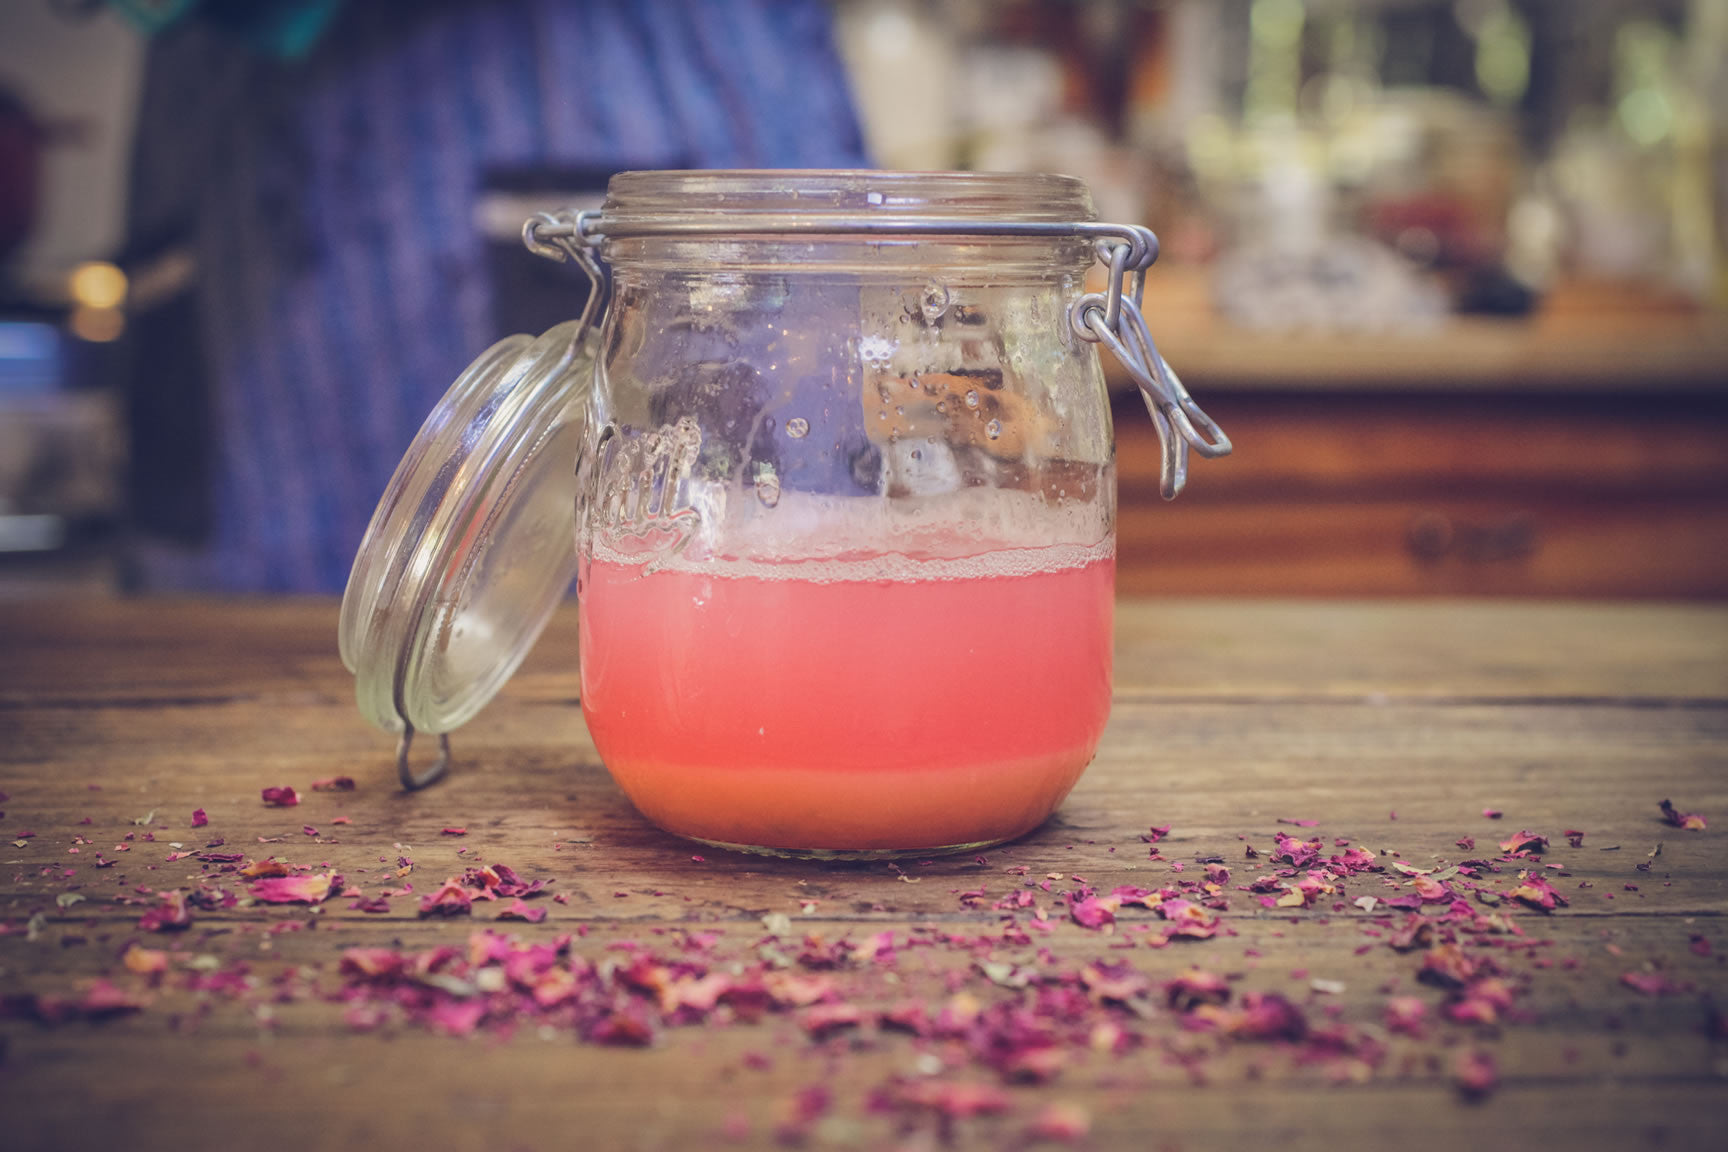 strained syrup rose